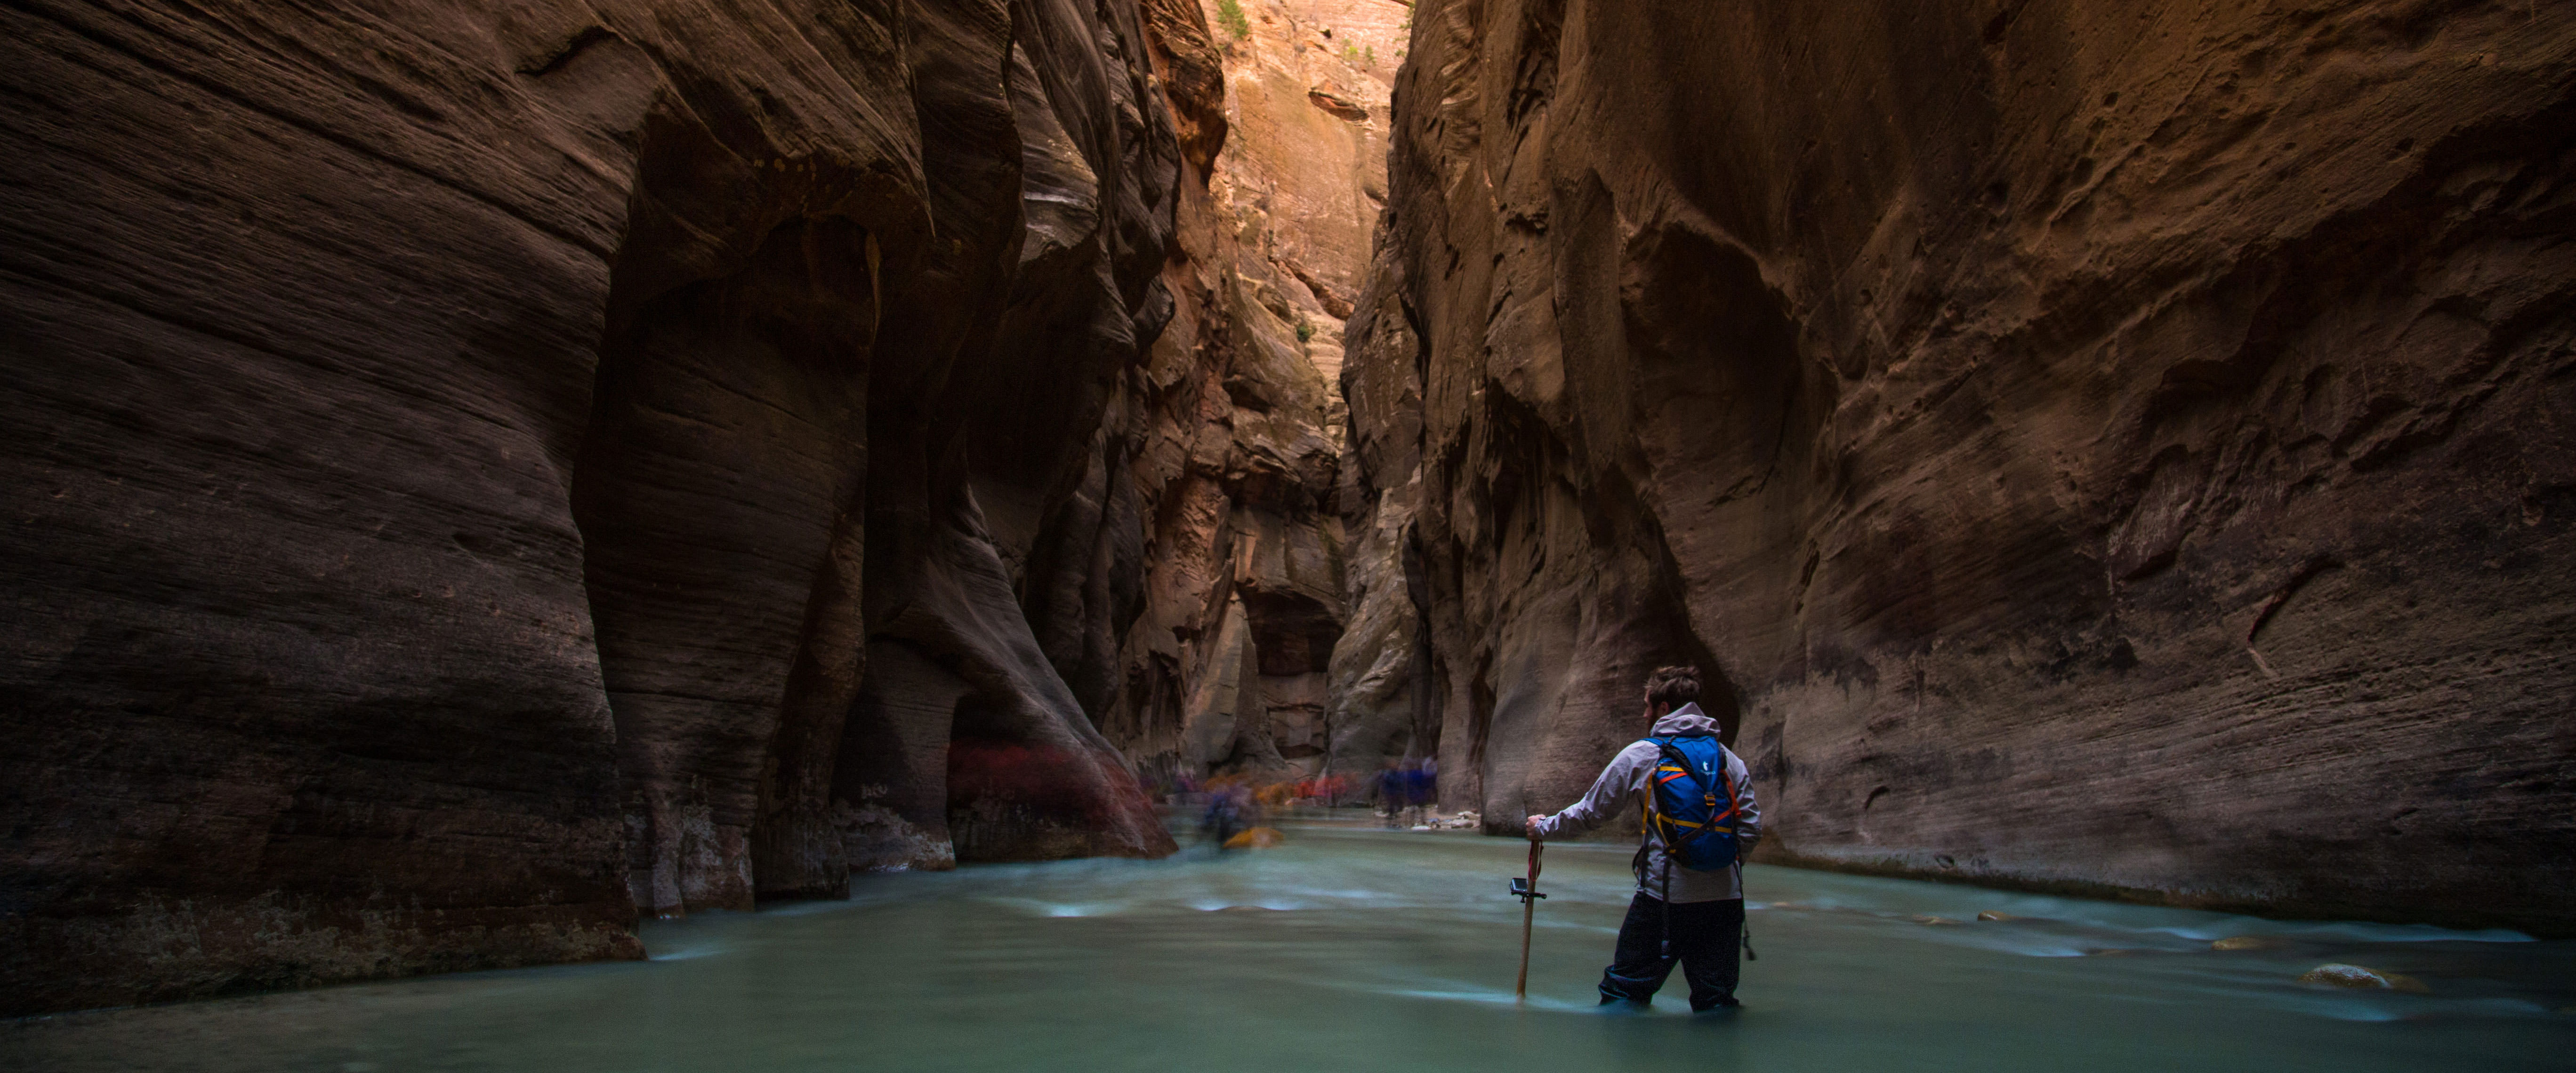 Huckberry insider's guide the narrows chris brinlee closing photo3